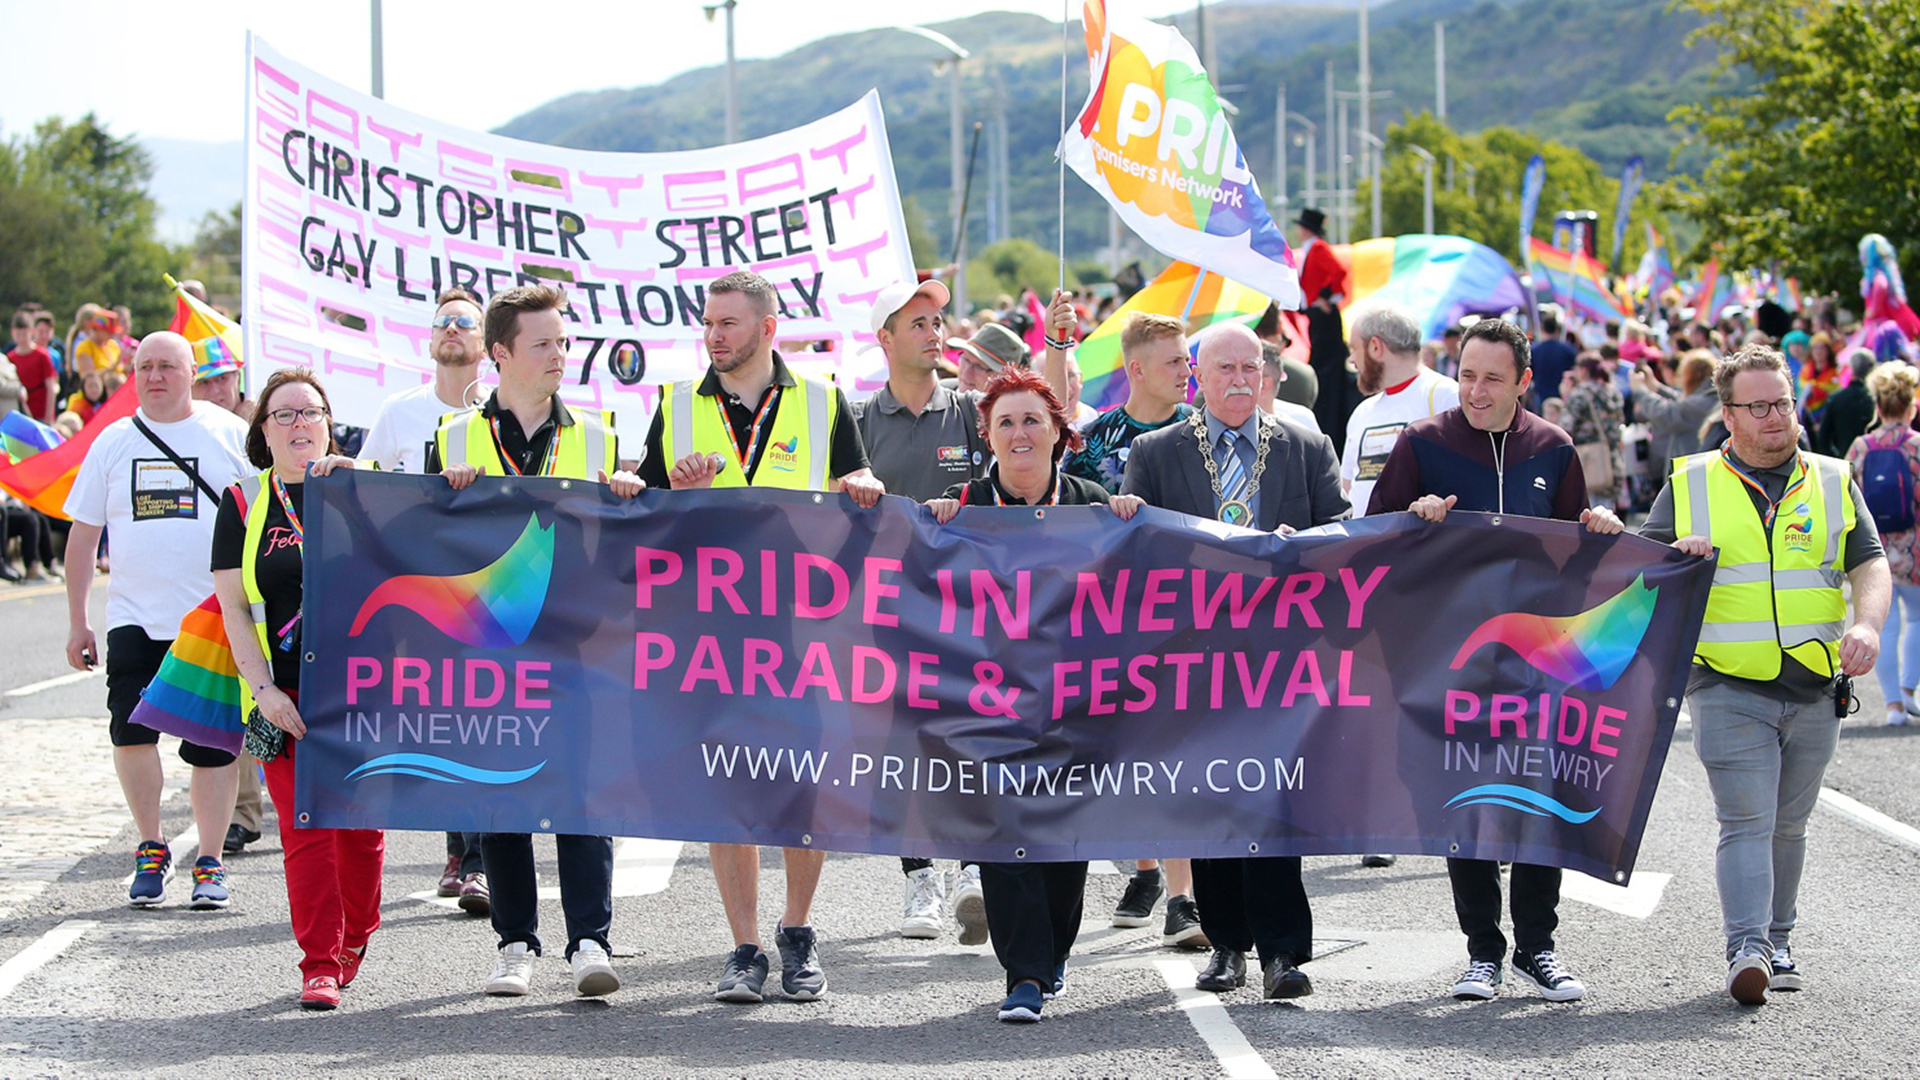 Newry Pride festival organisers walking in parade holding a banner which reads